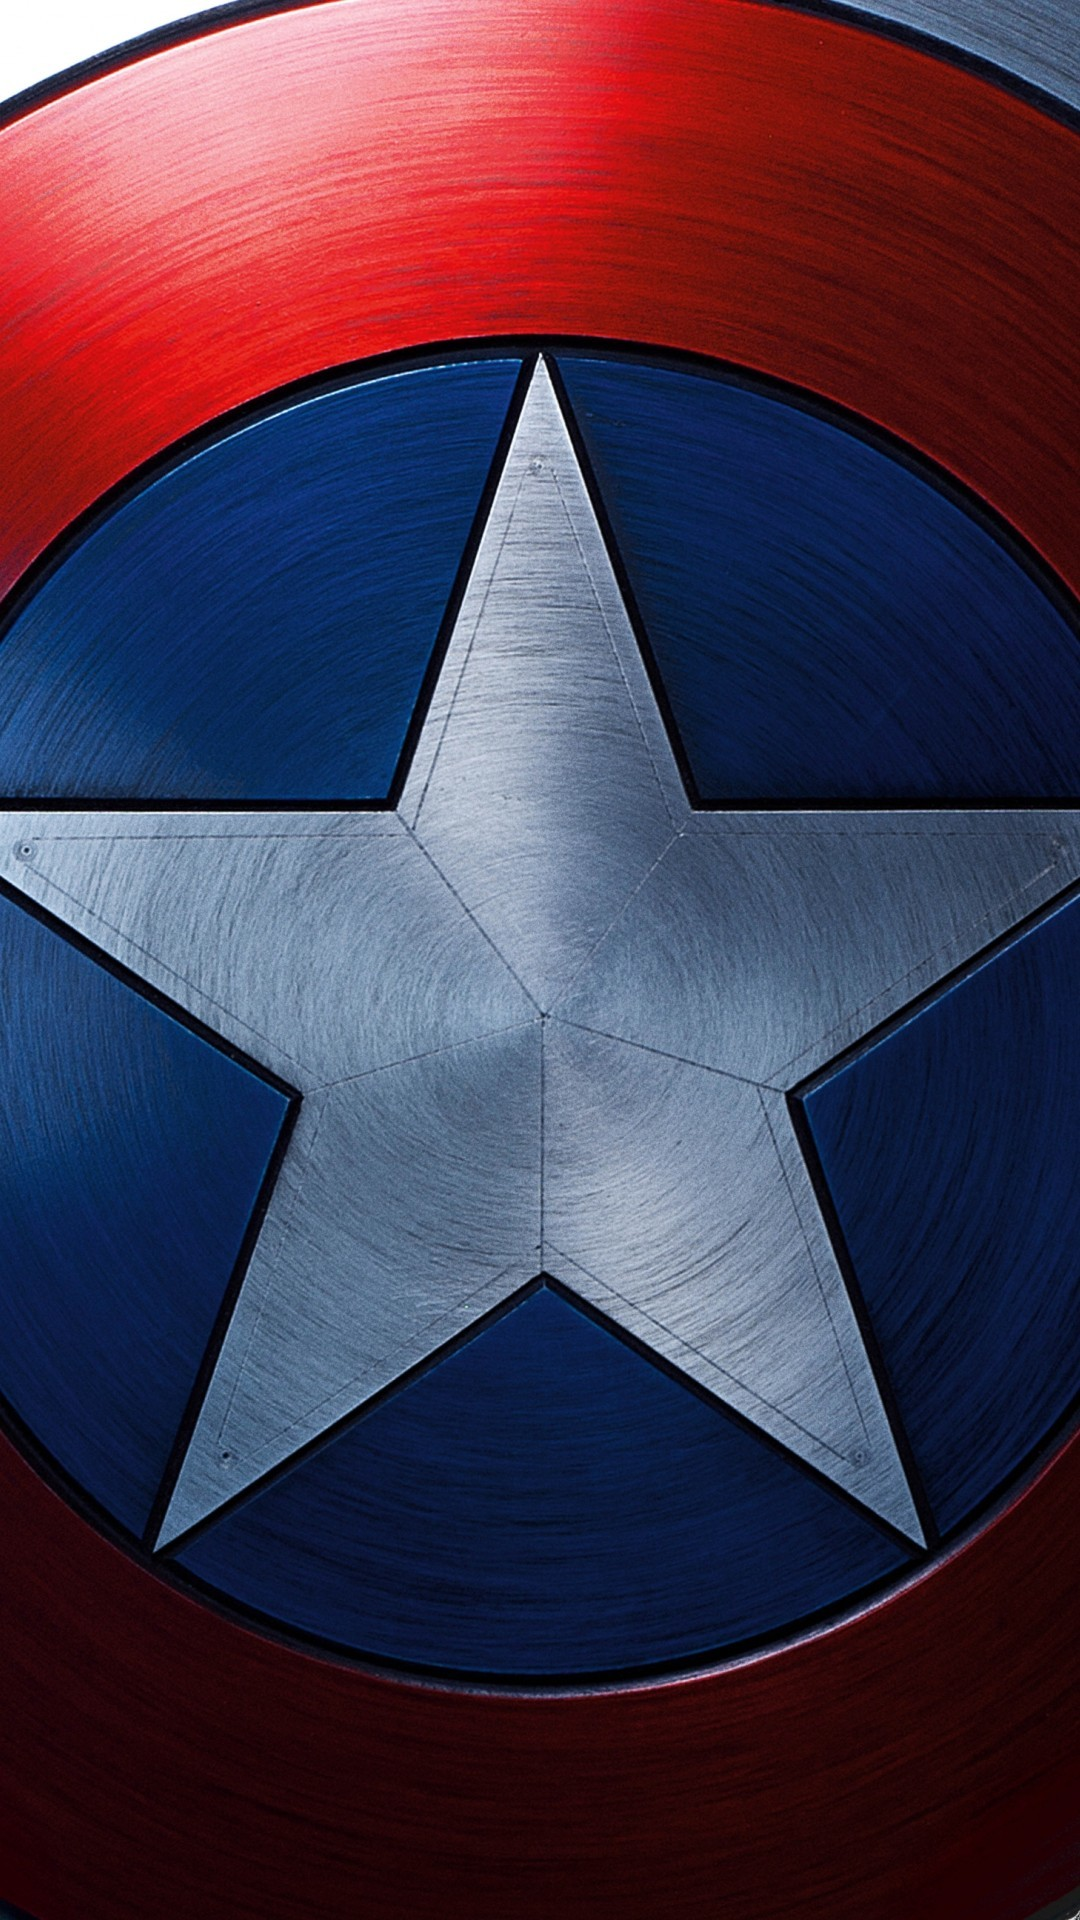 … marvel civil war iphone 6 plus wallpaper 3d wallpapers with hd …